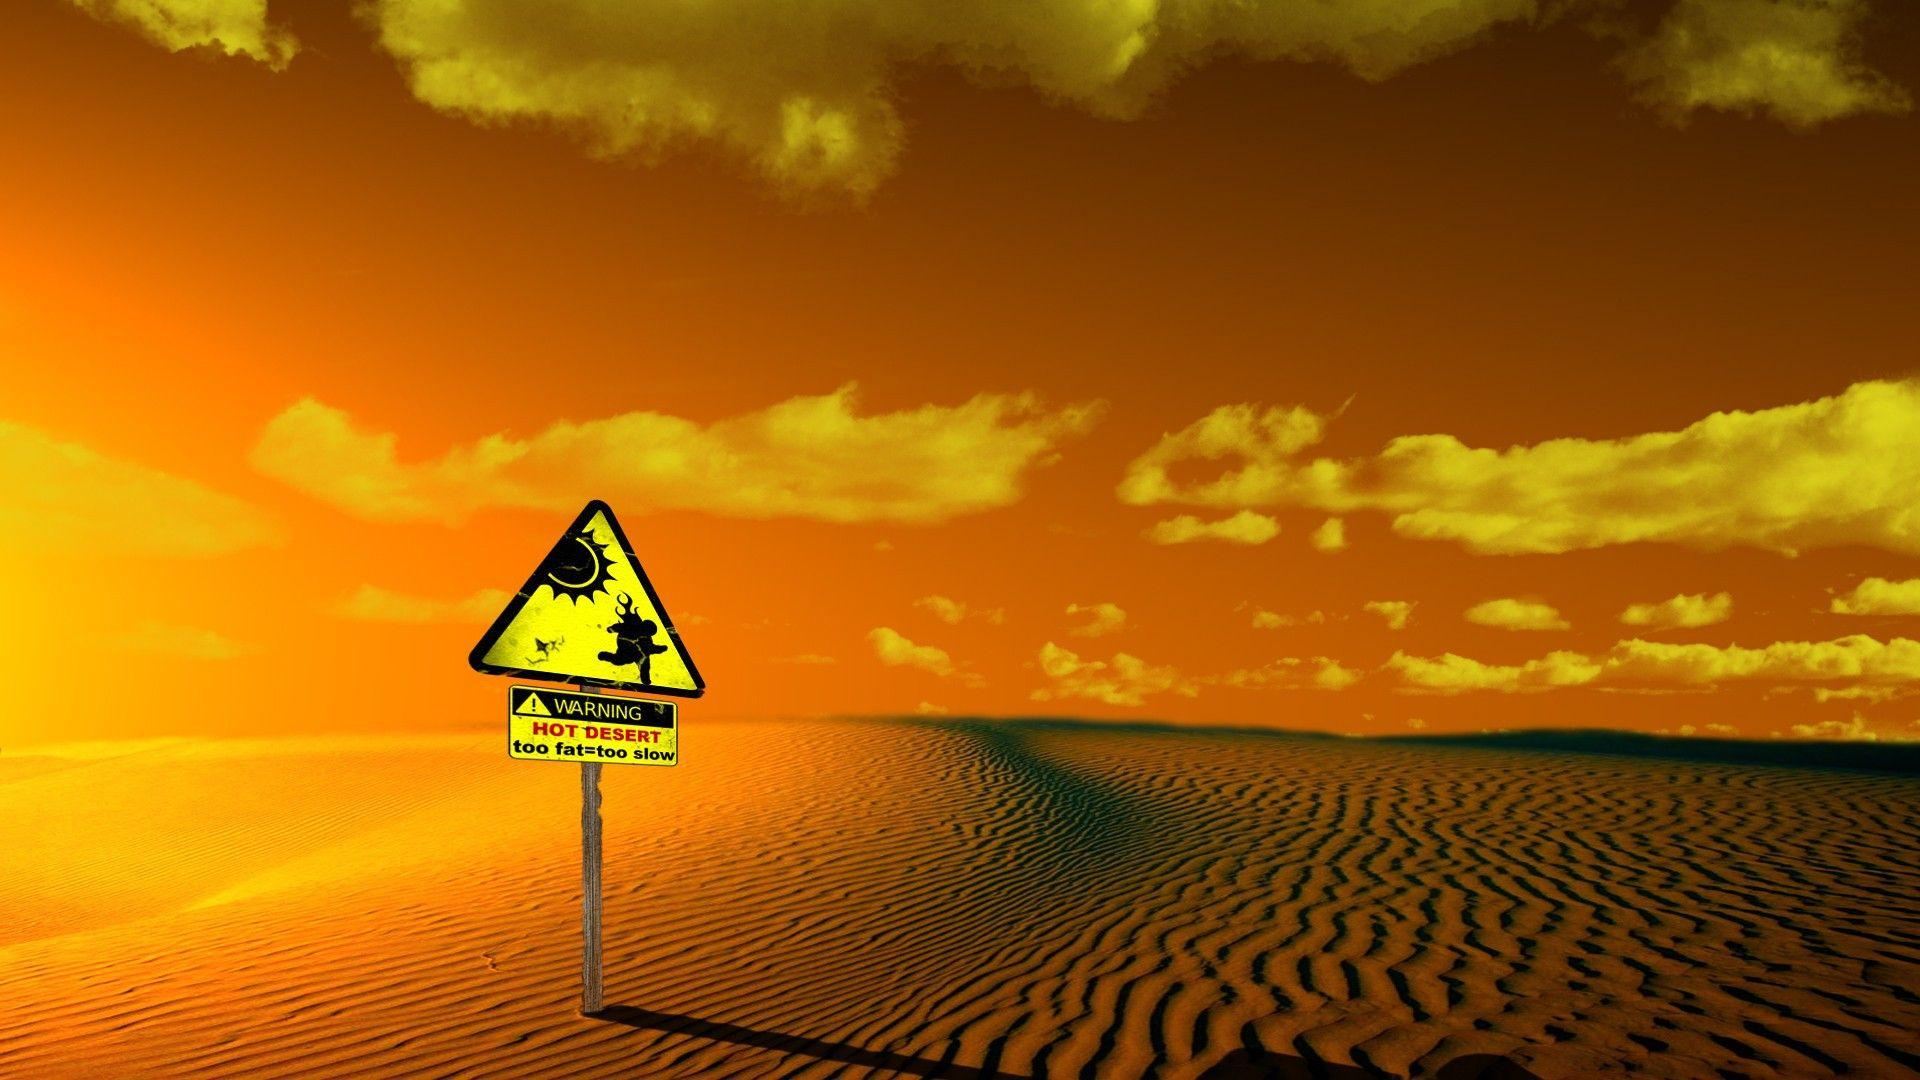 Caution, hot desert, sign wallpapers and images - wallpapers ...